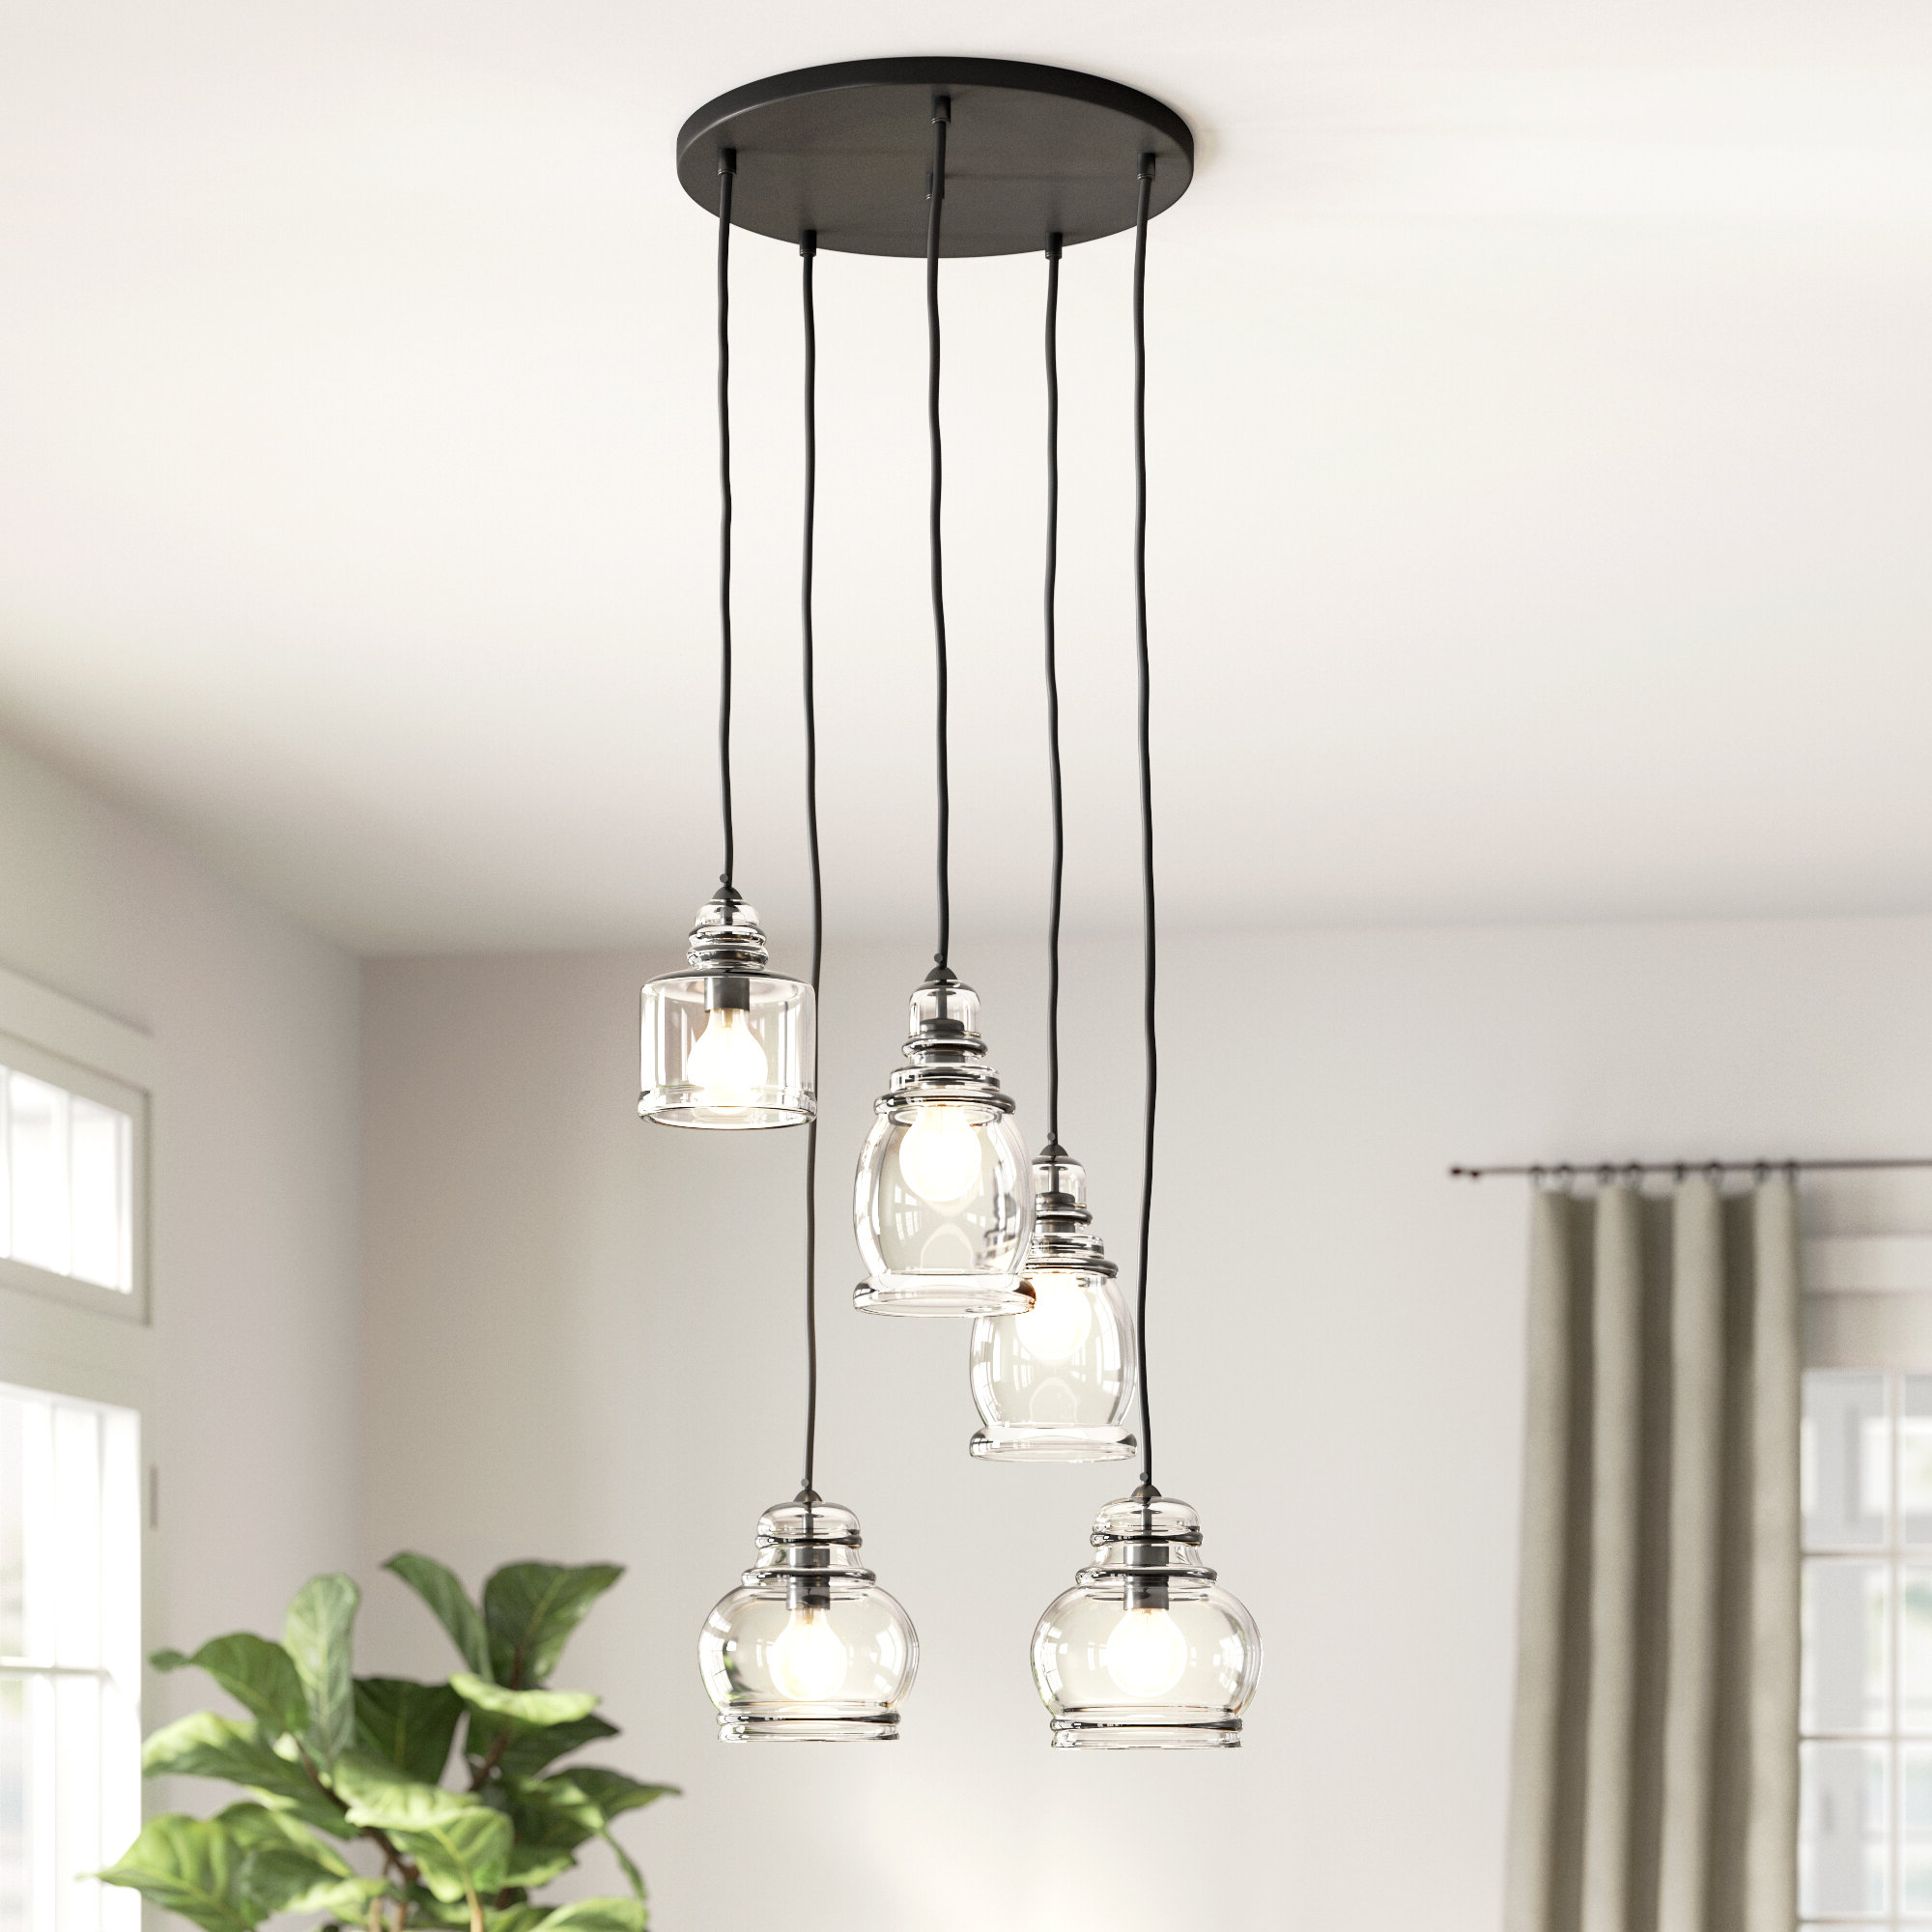 Most Popular 5 Light Cluster Bell Pendant With Ariel 2 Light Kitchen Island Dome Pendants (View 21 of 25)